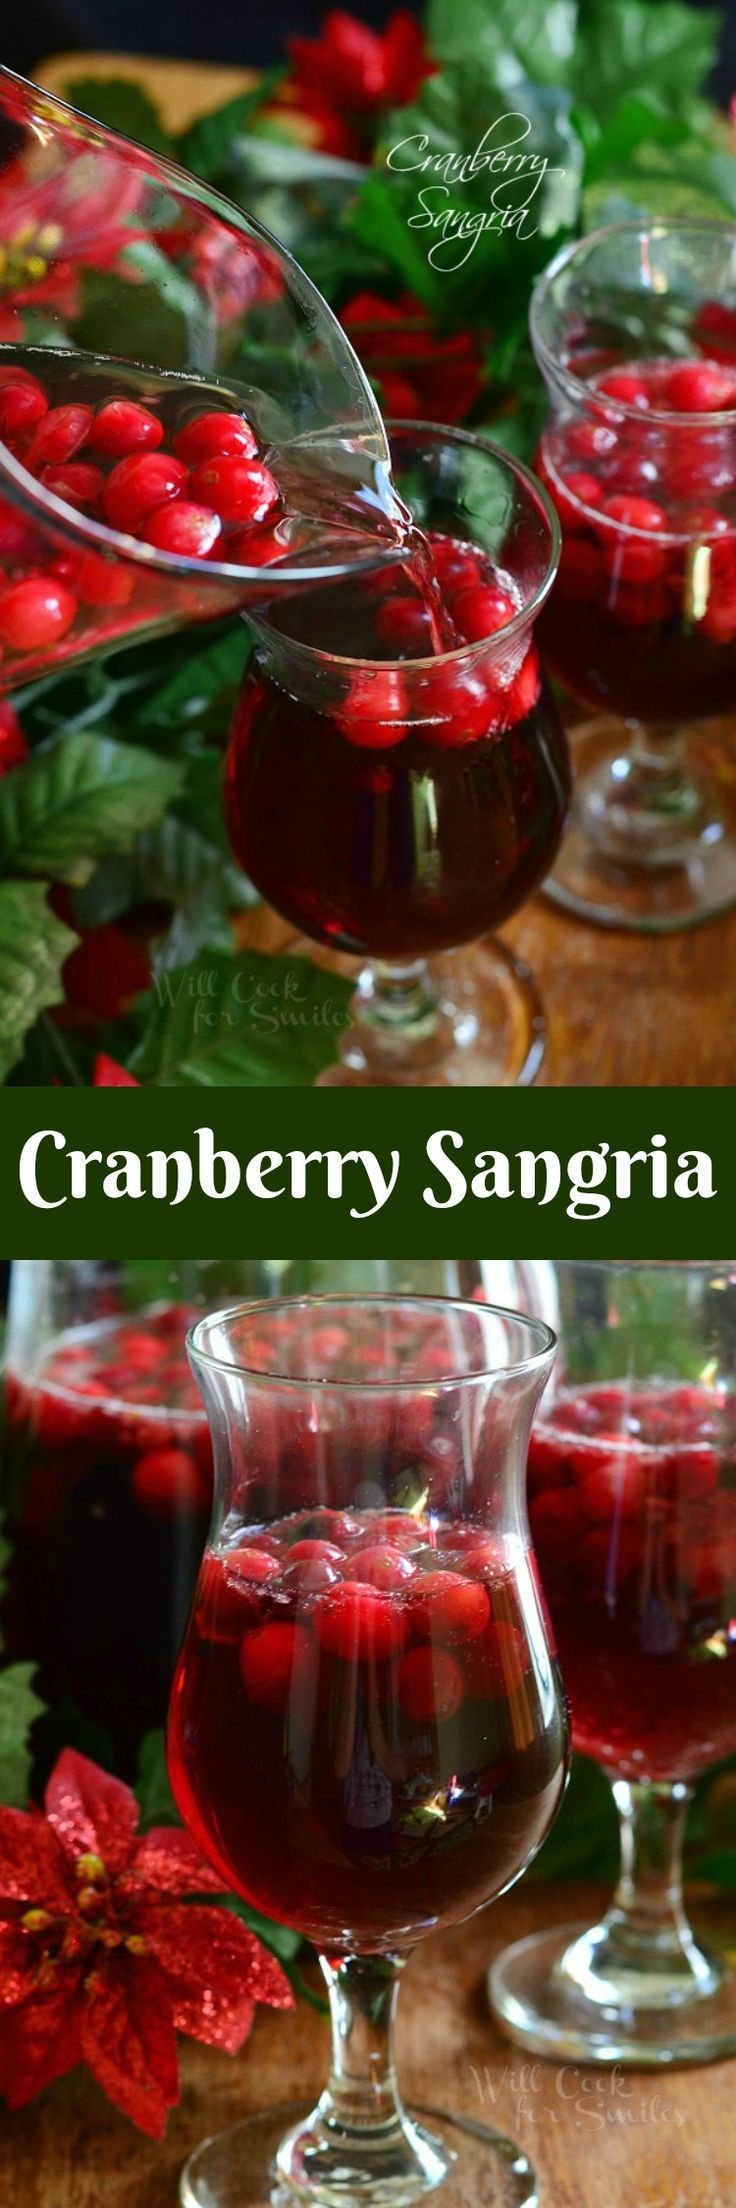 Cranberry Sangria is perfect for this holiday season. Delicious seasonal cocktail made with fresh cranberries, cranberry flavored vodka, juice and red wine.